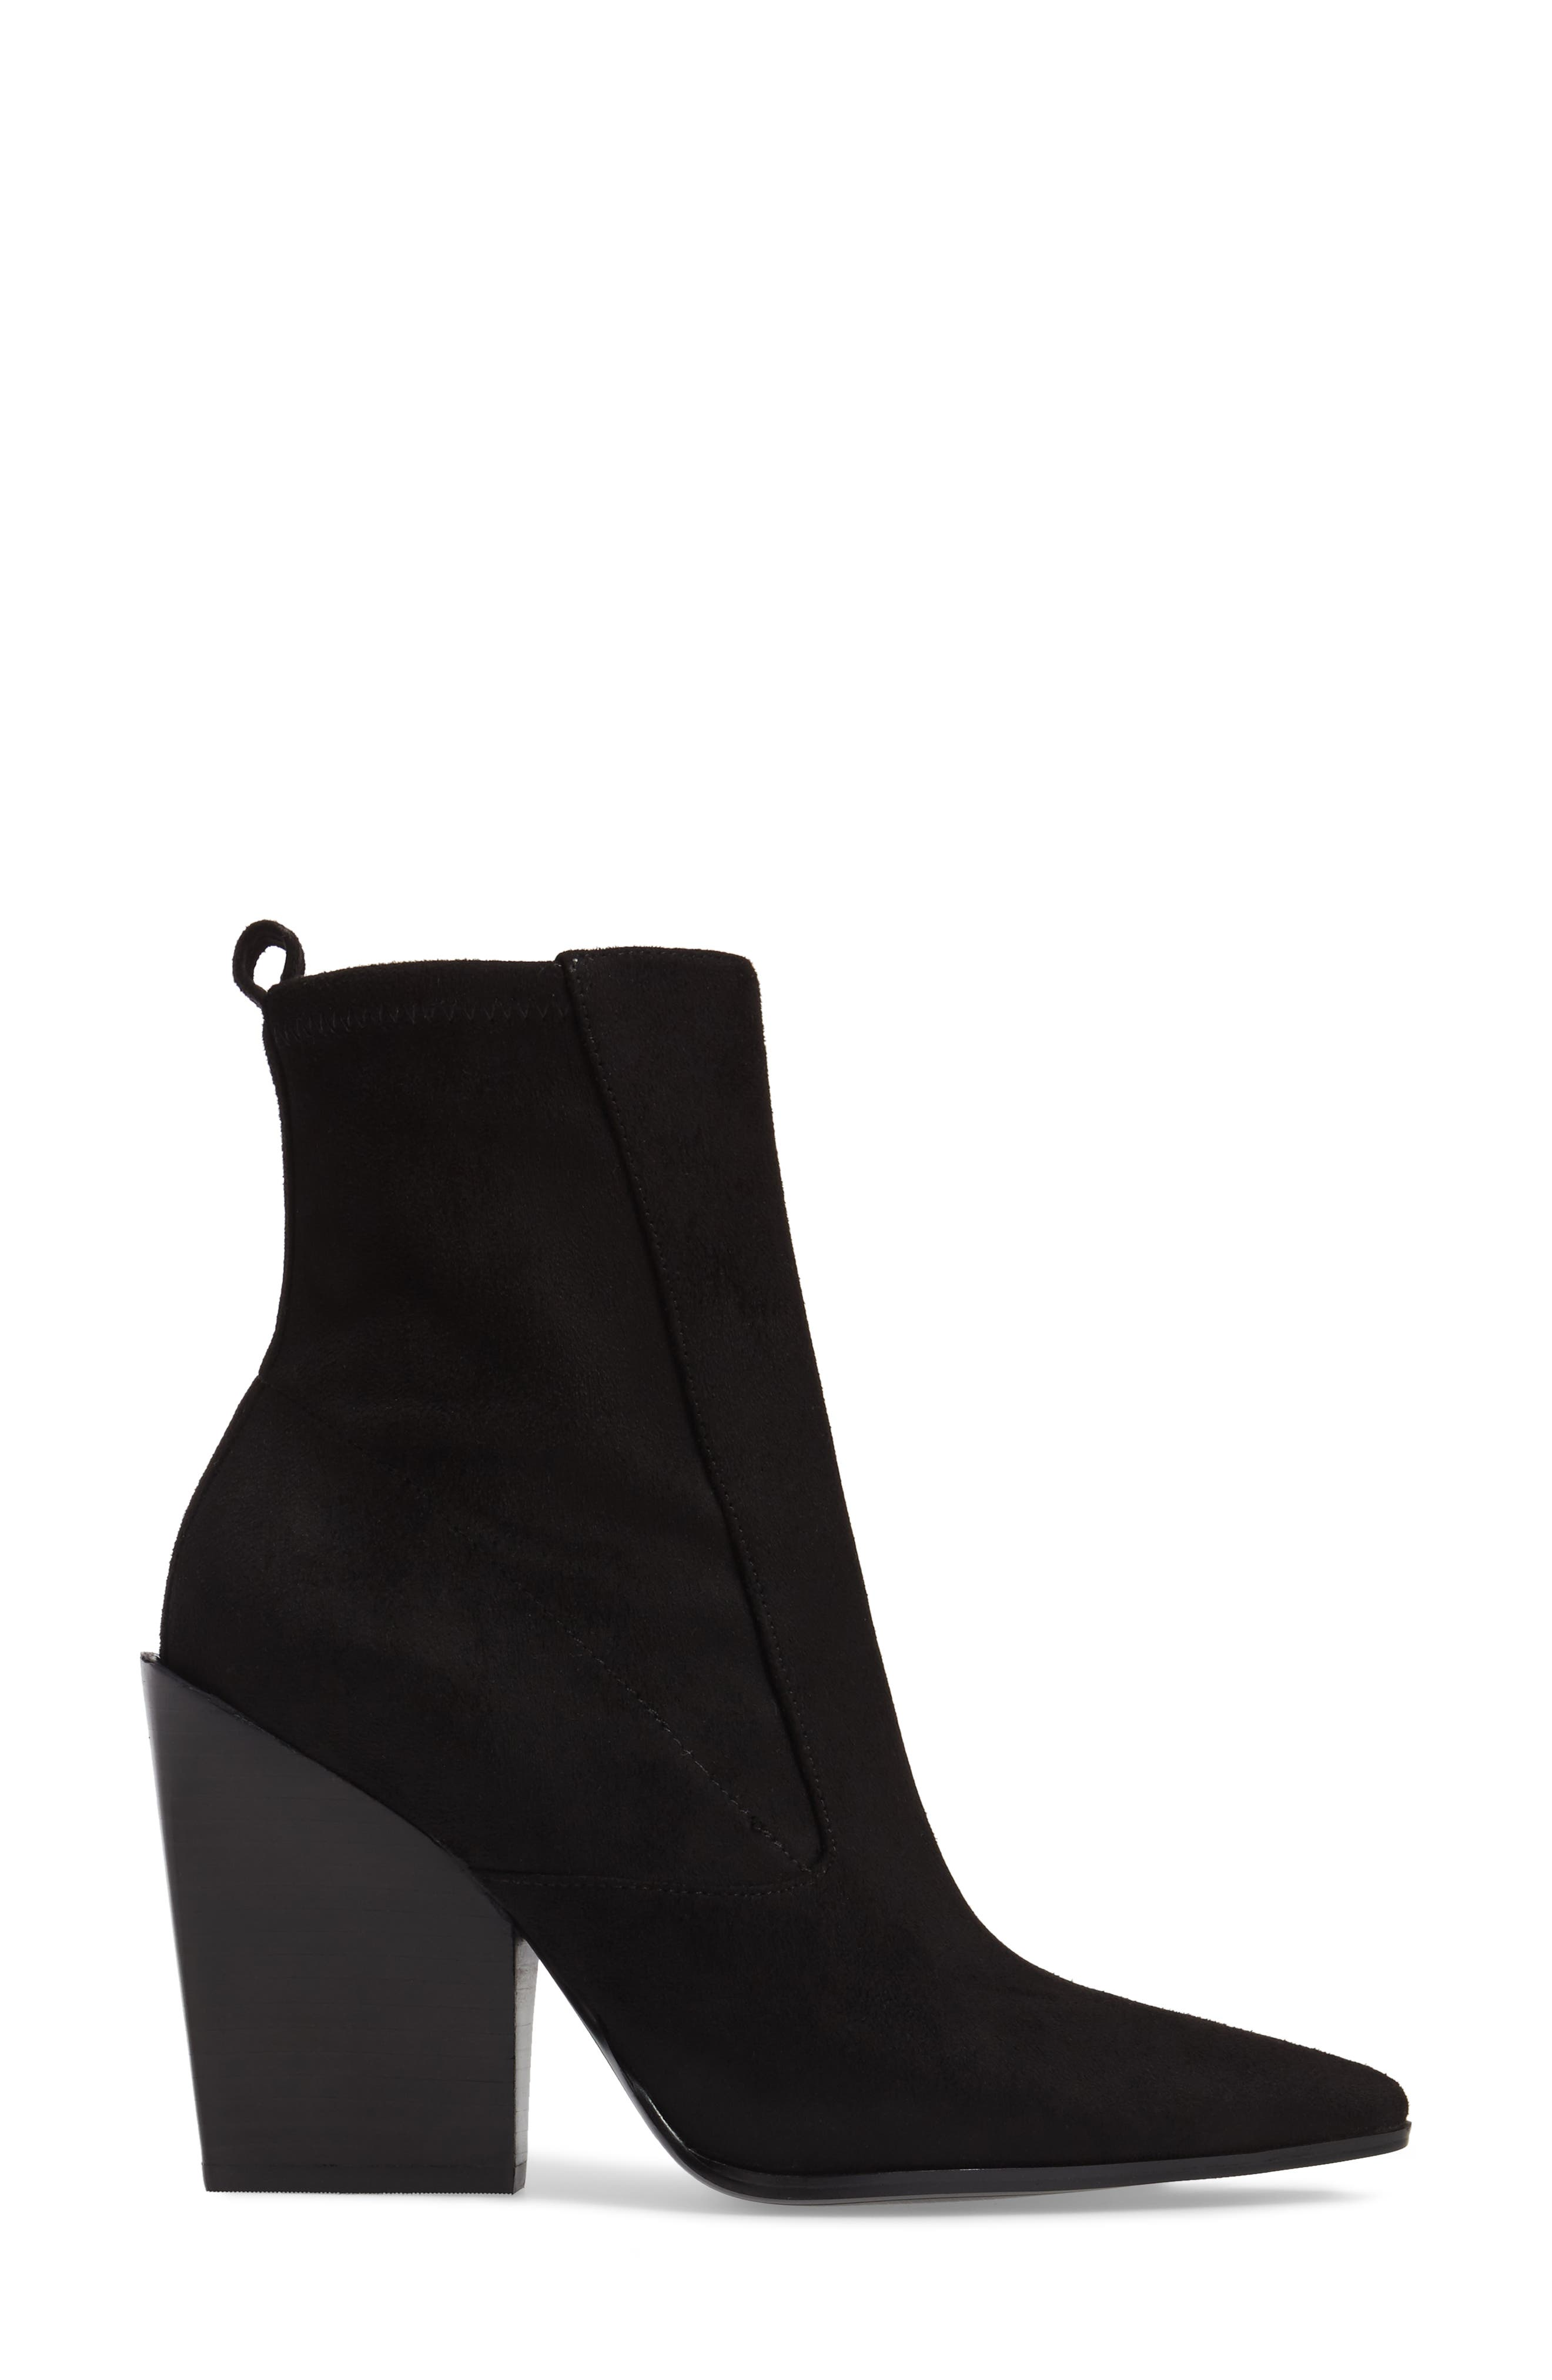 Fallyn Pointed Toe Bootie,                             Alternate thumbnail 3, color,                             006